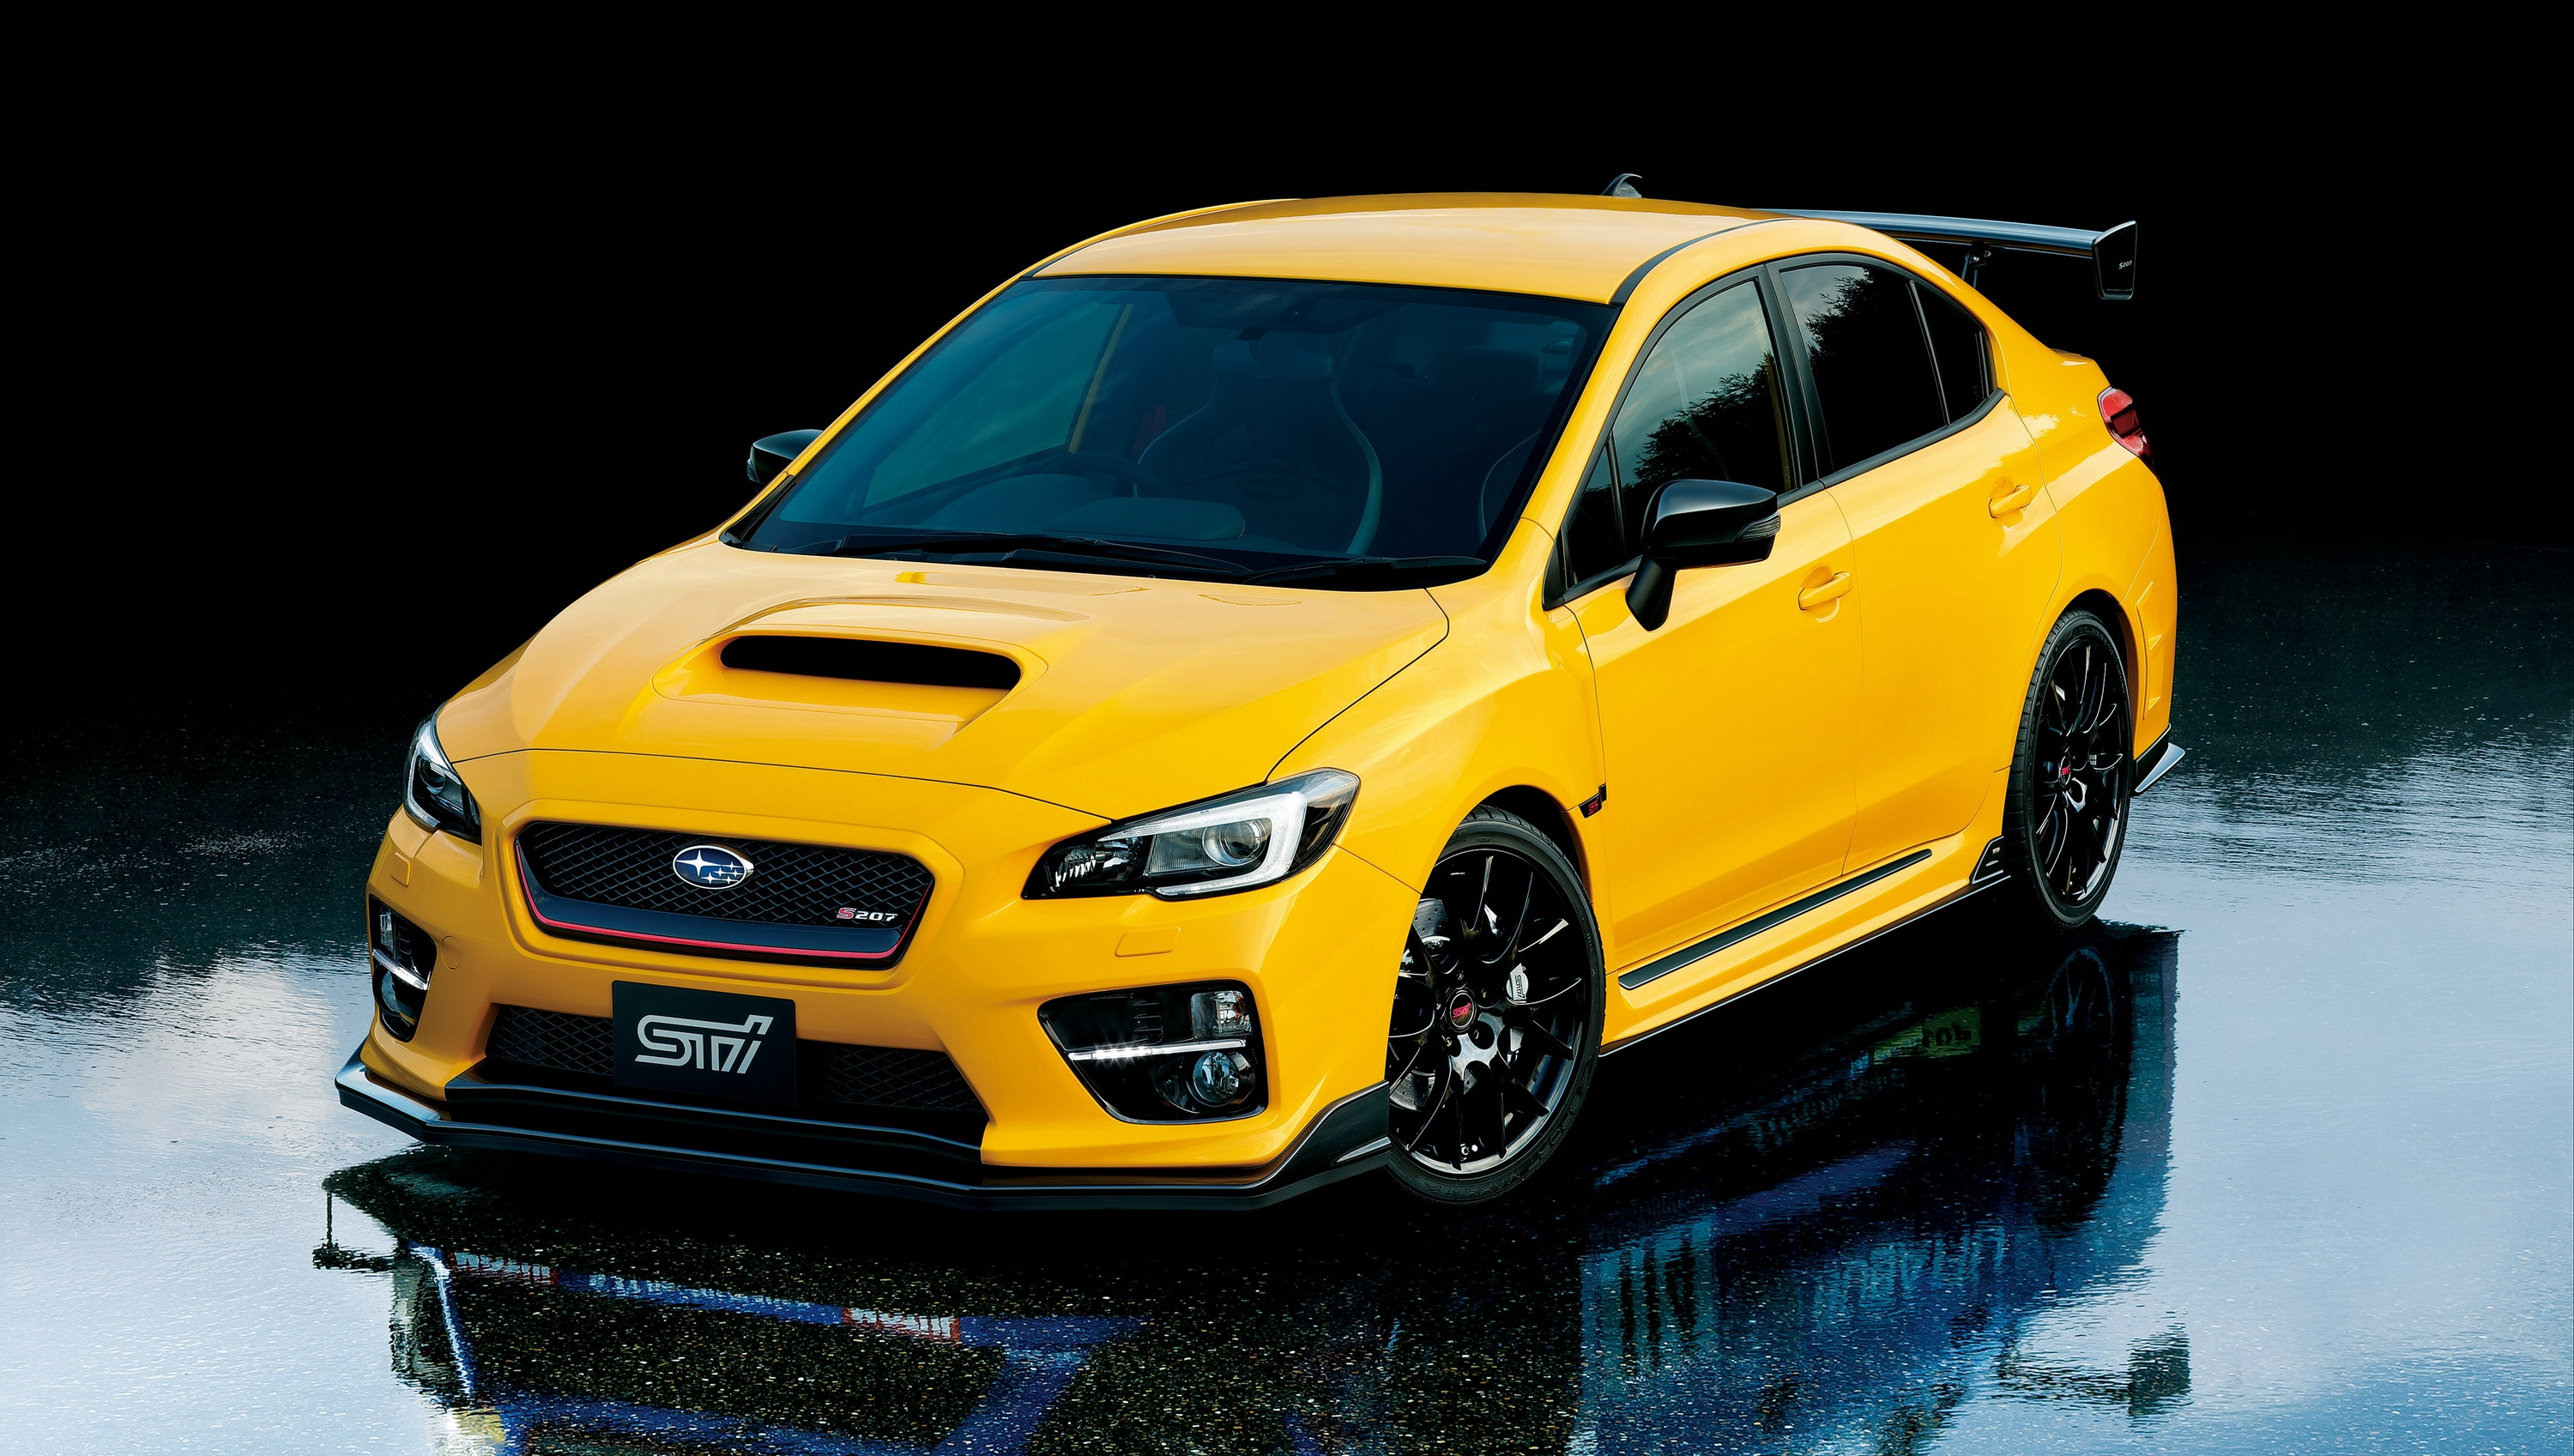 2016 subaru wrx sti s207 limited edition pictures photos wallpapers top speed. Black Bedroom Furniture Sets. Home Design Ideas